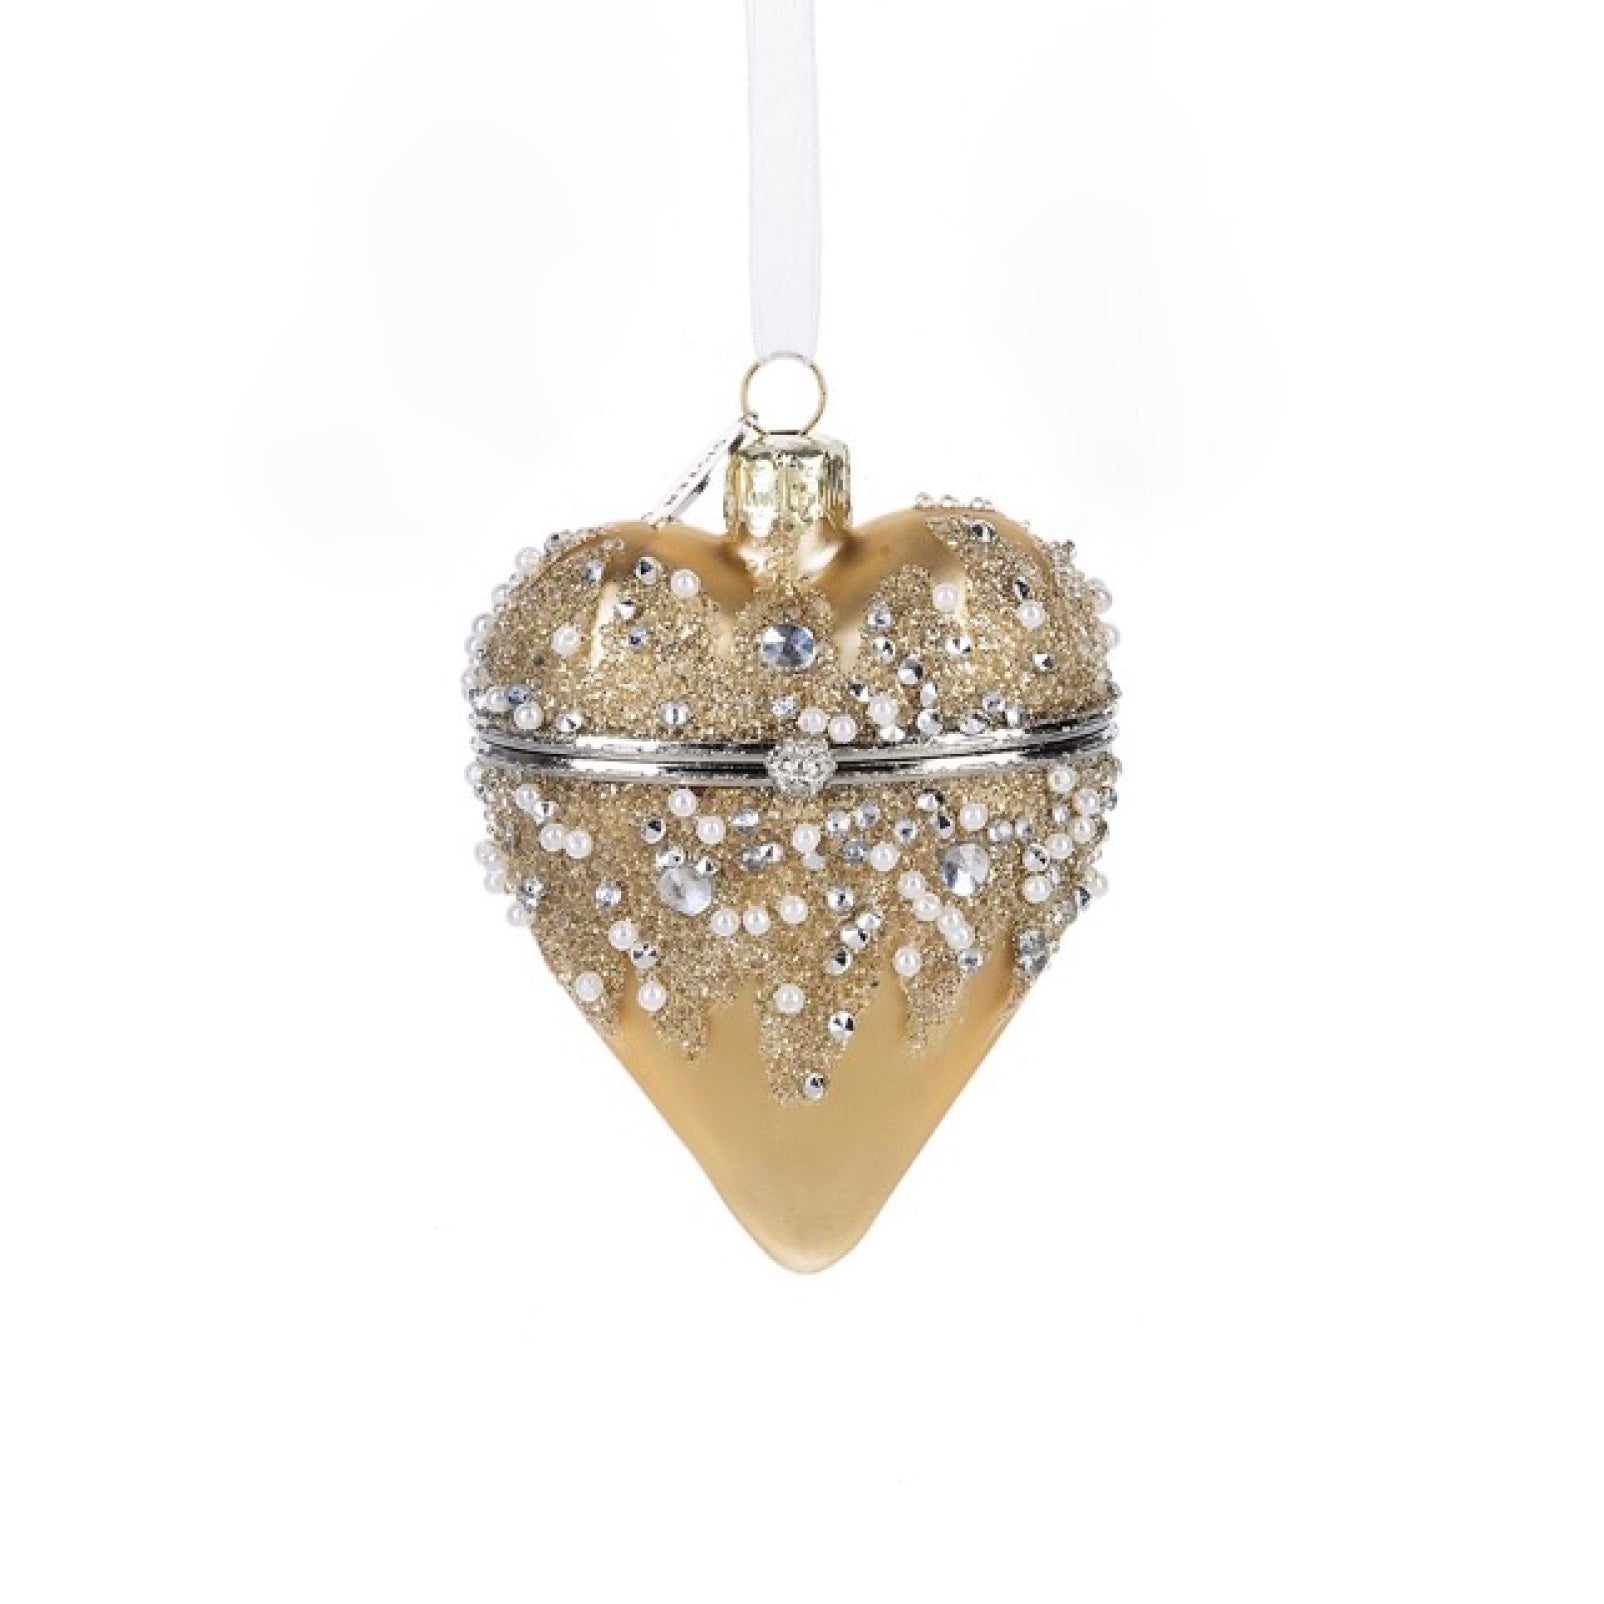 Hinged Heart Treasure Box Ornament - Gold - Putti Celebrations Canada